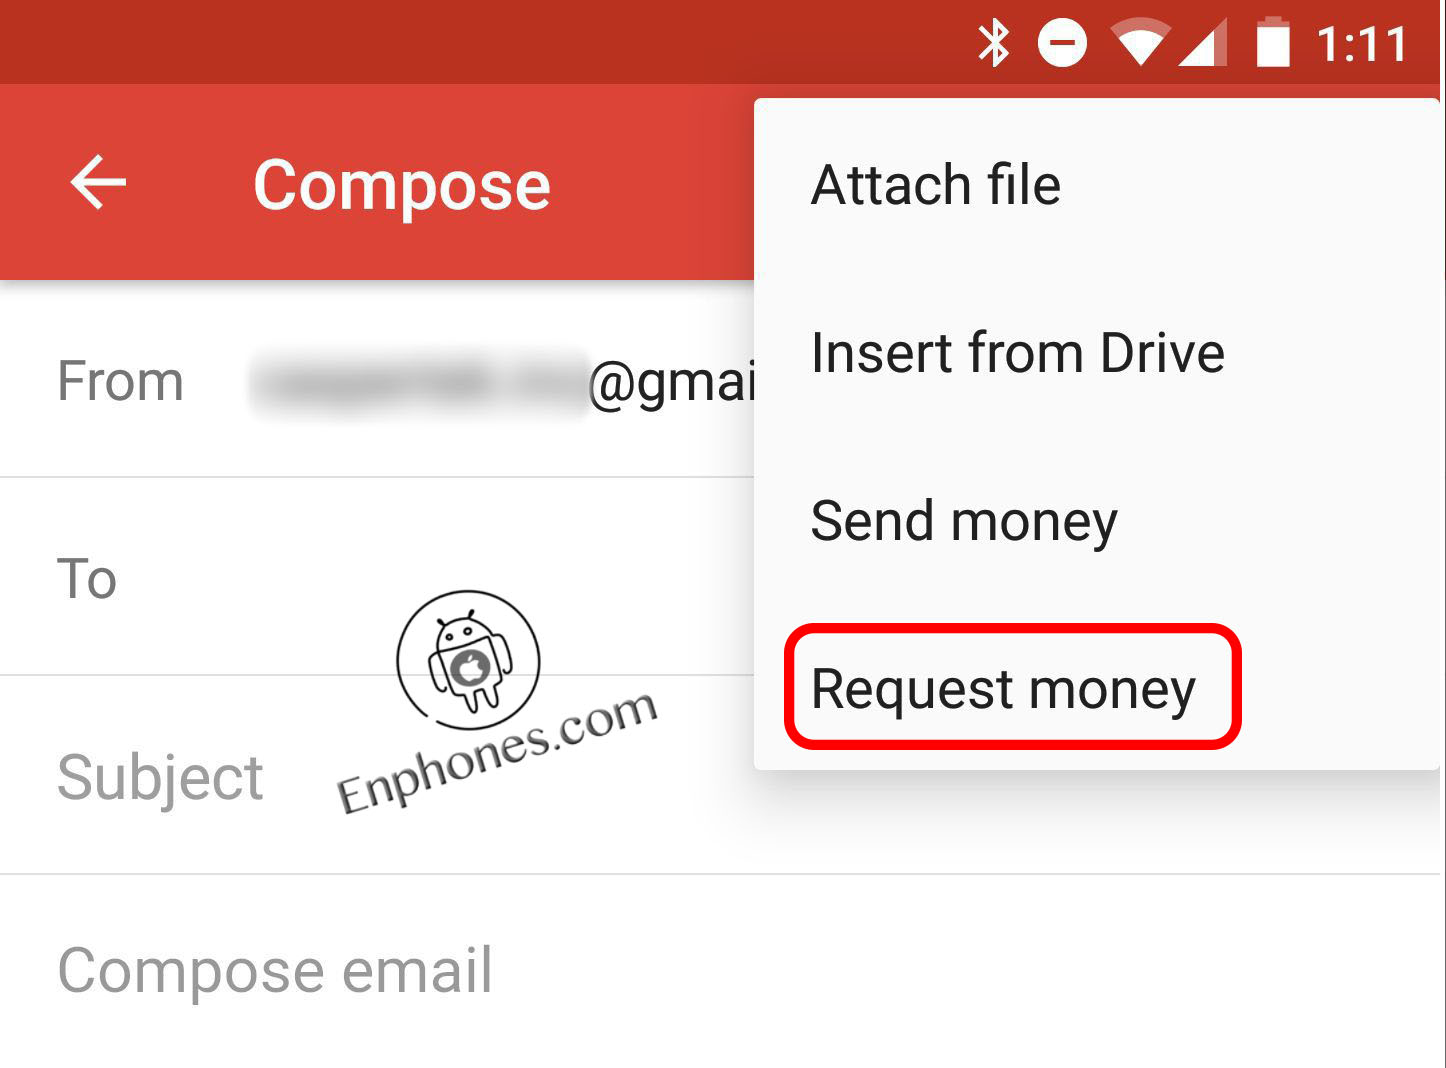 How To Send And Request Money With Gmail App On Android